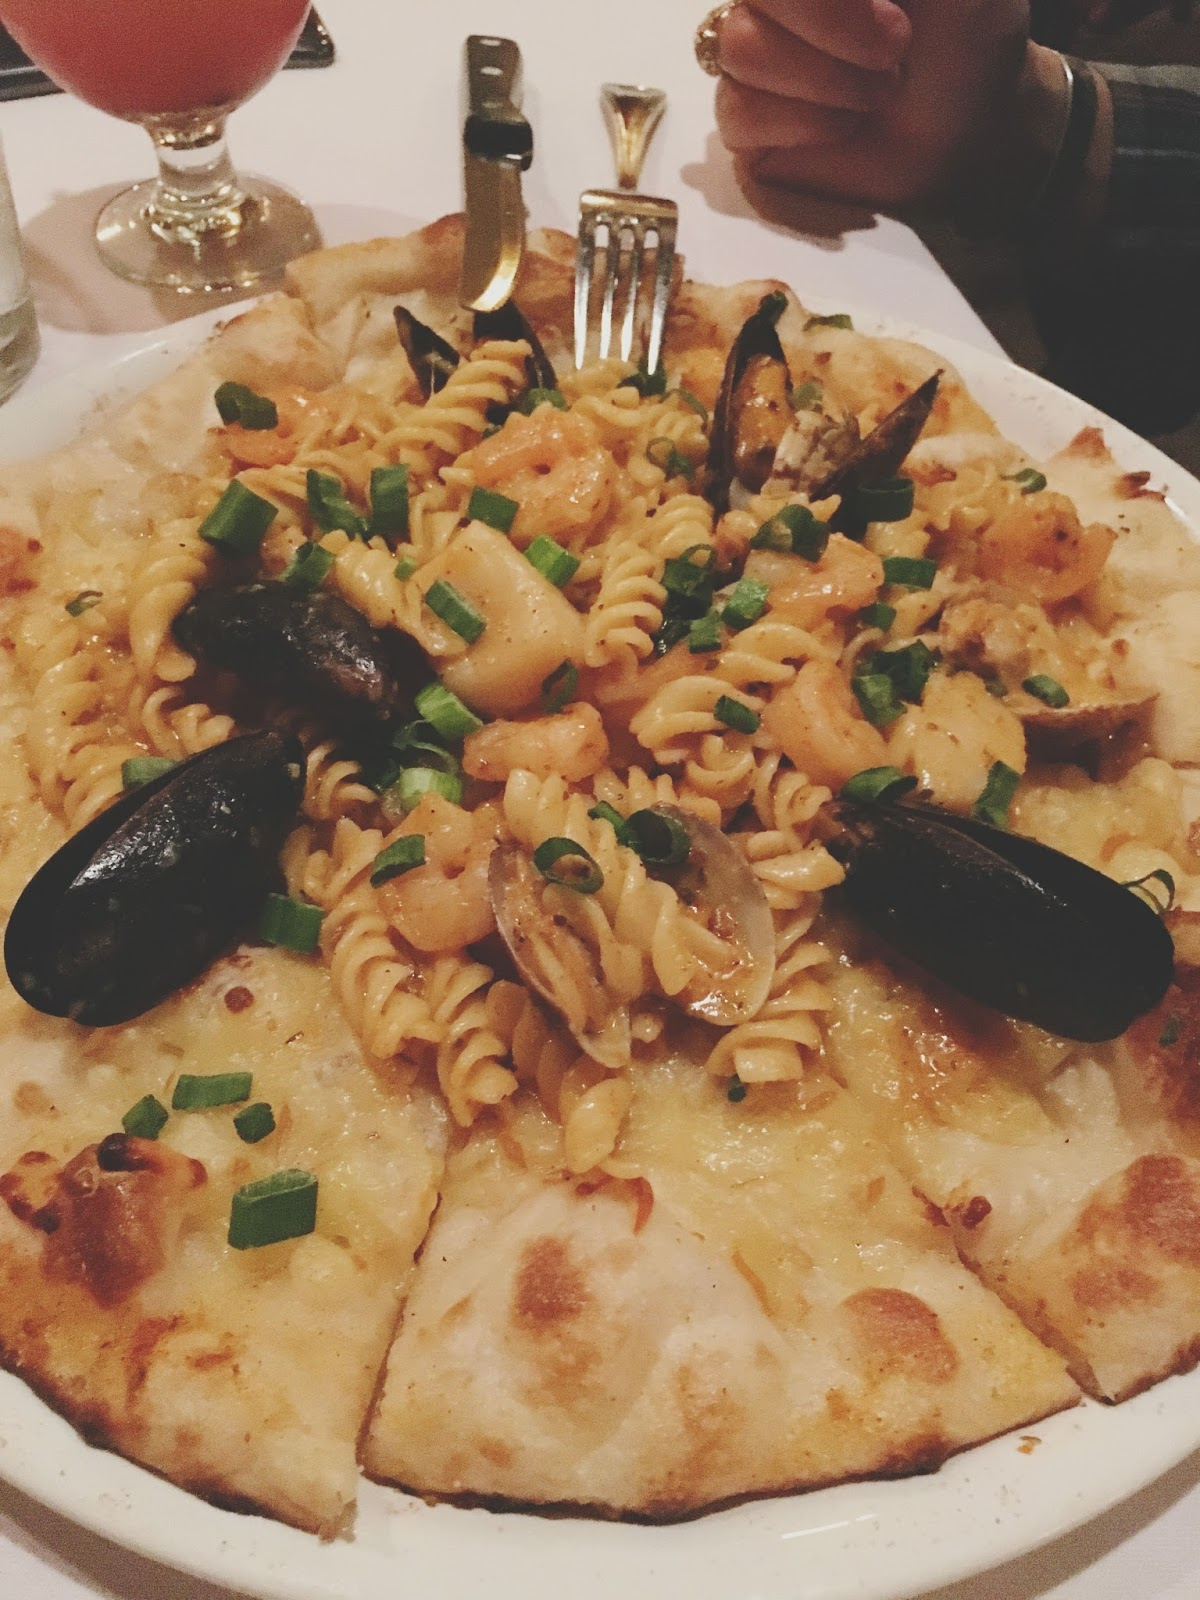 seafood pizza at The Union Kitchen, a restaurant in Houston